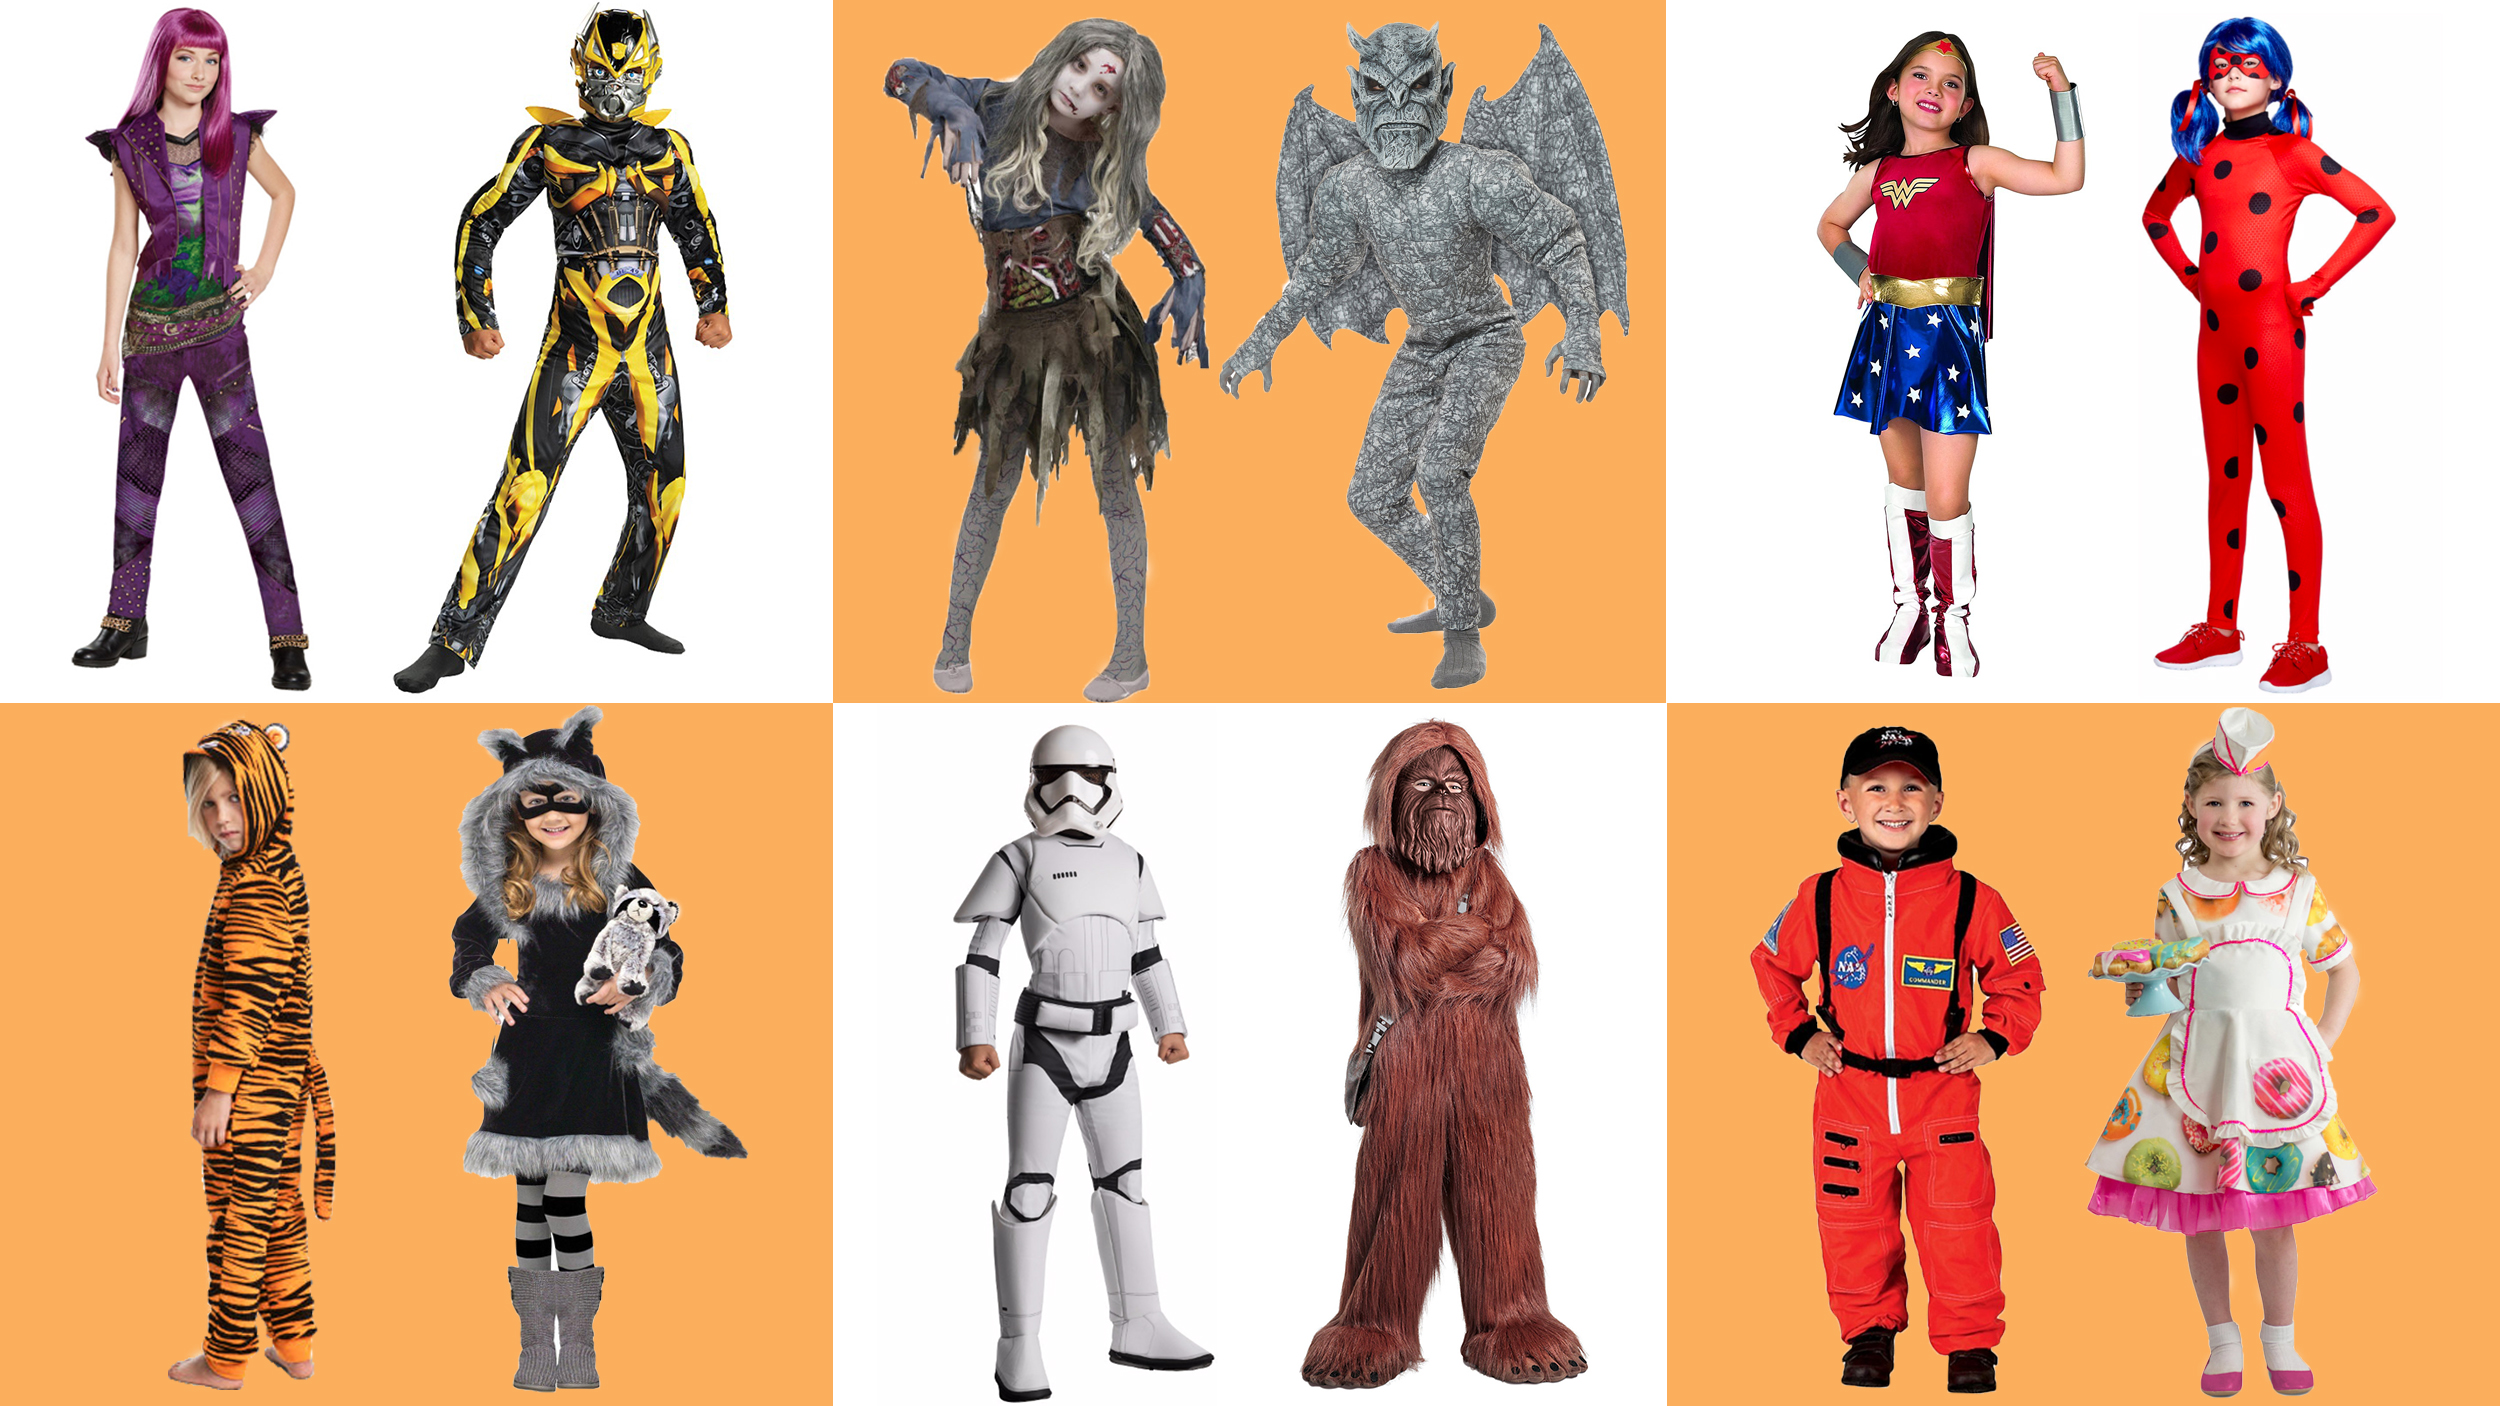 43 Kids' Halloween costume ideas for all ages - TODAY.com